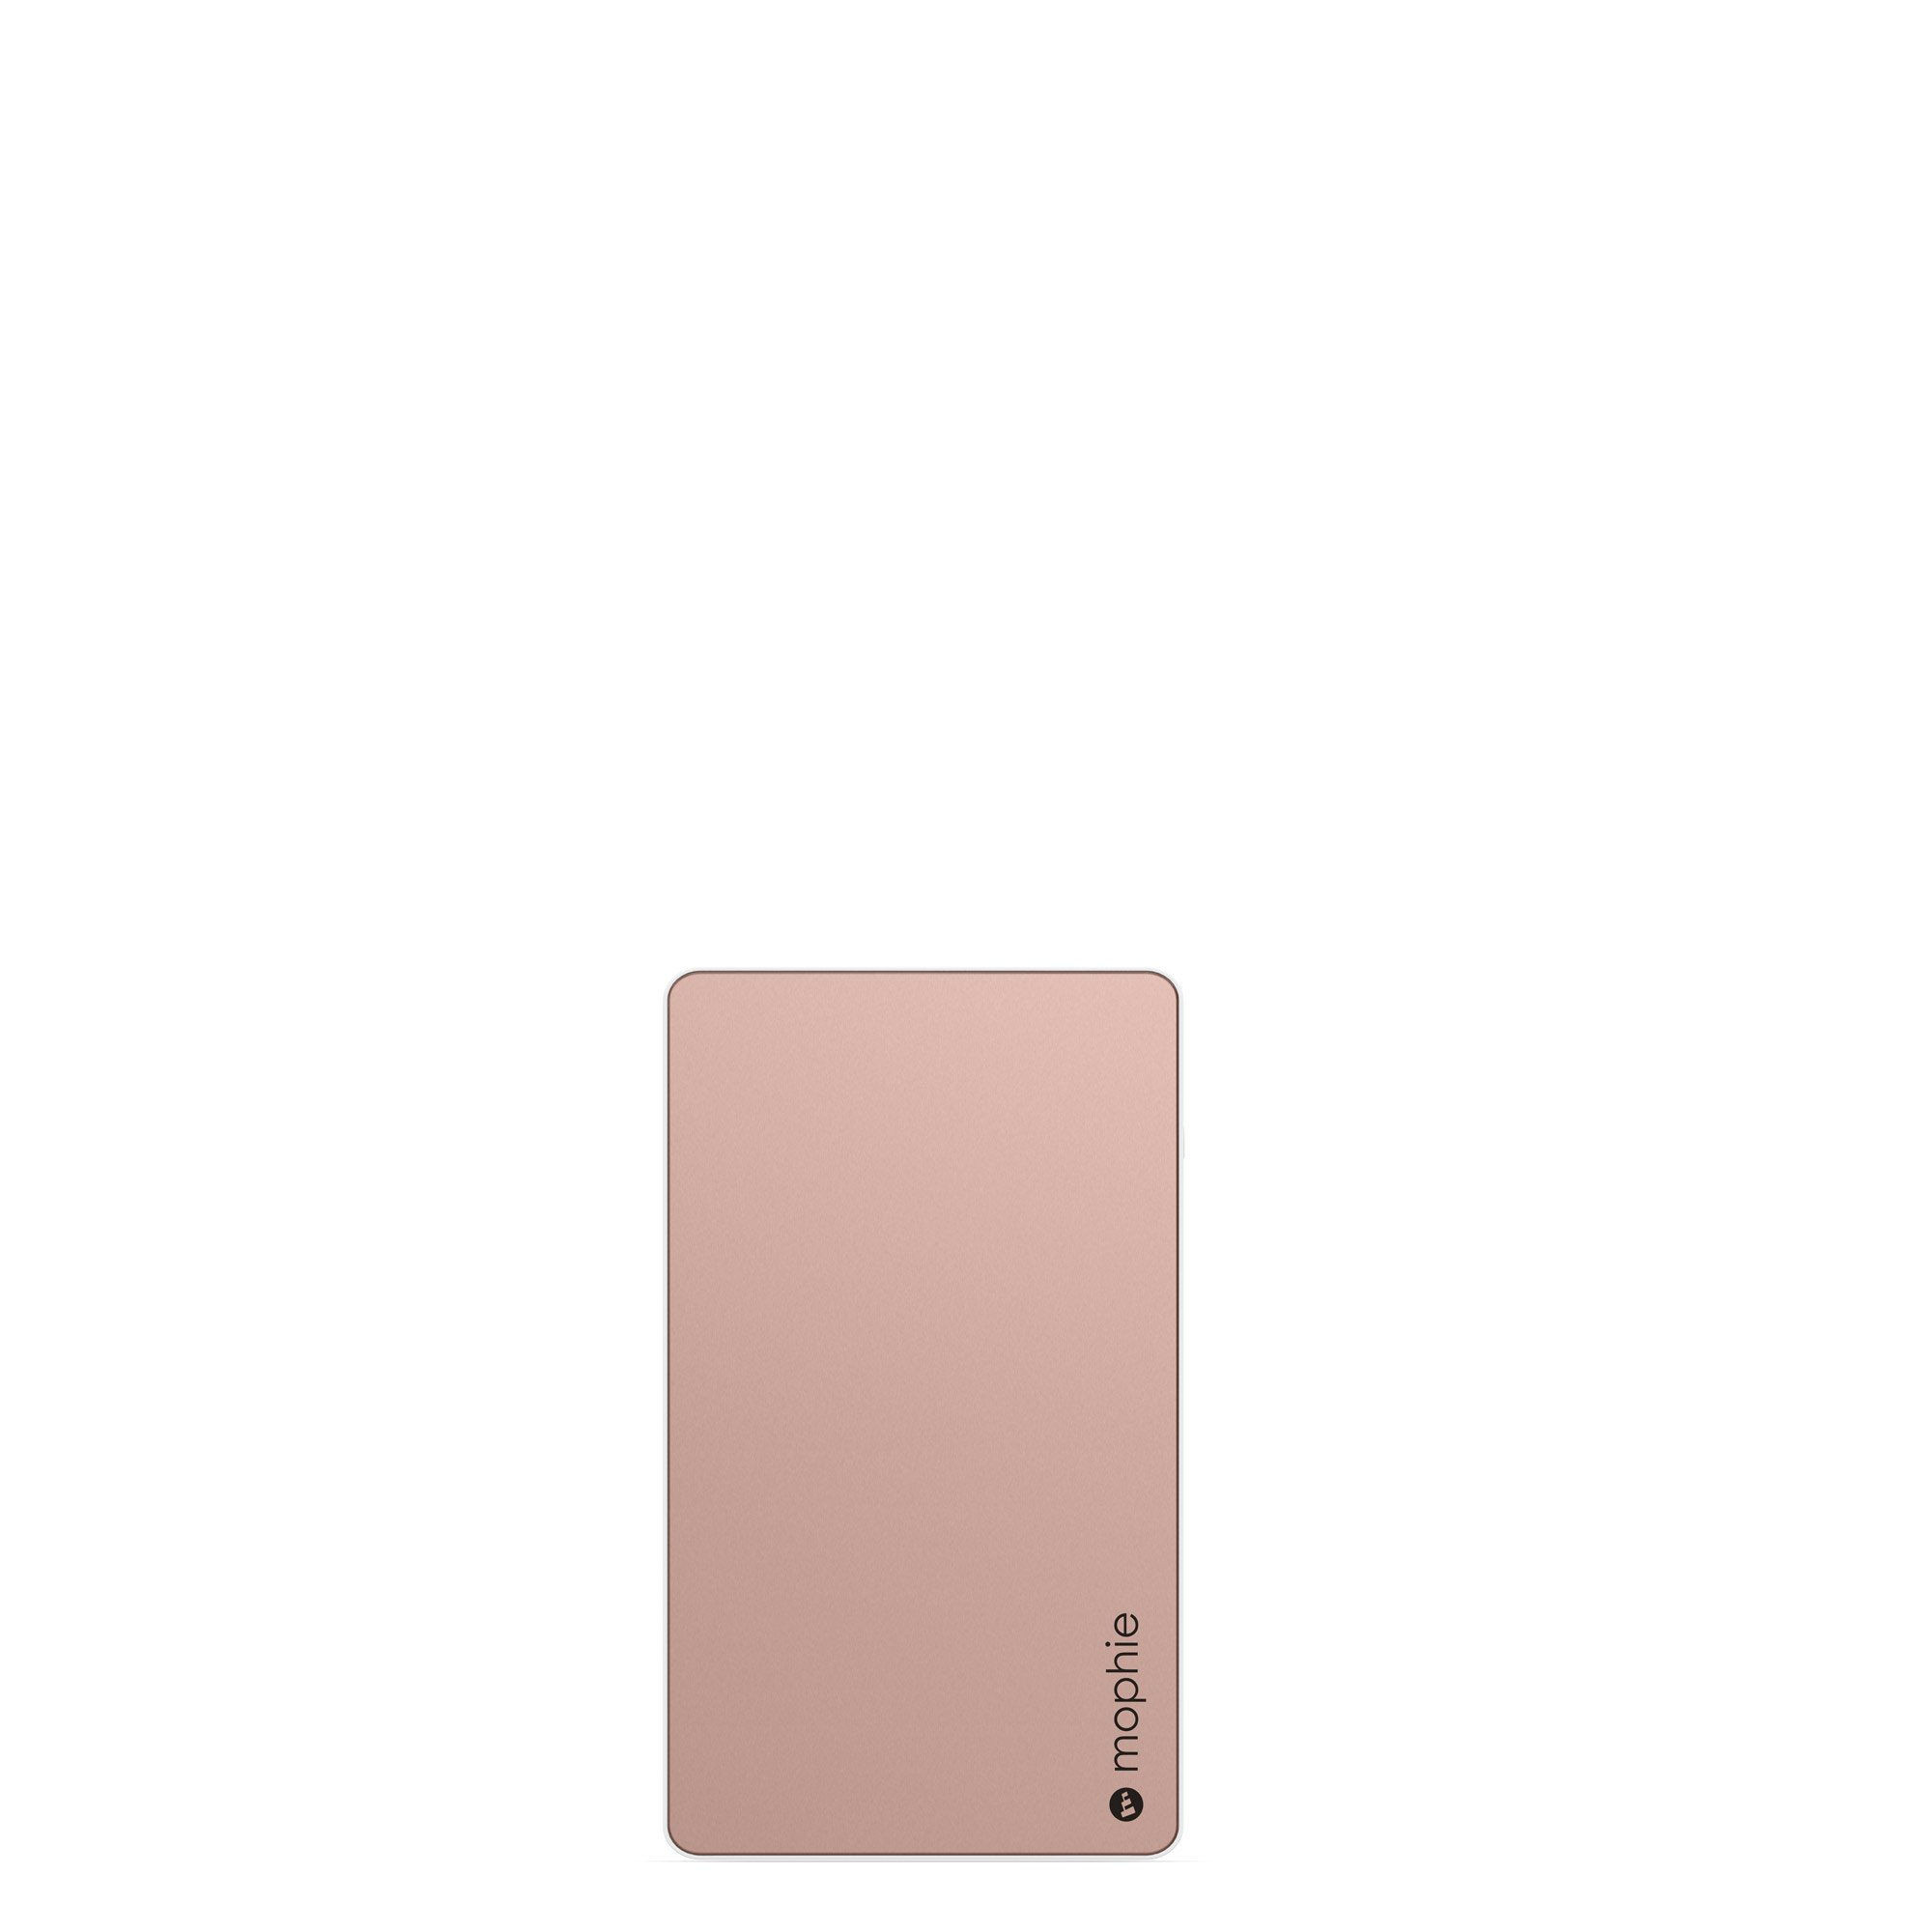 mophie PowerStation - Universal External Battery - Made for Smartphones and Tablets (6,000mAh) - Rose Gold